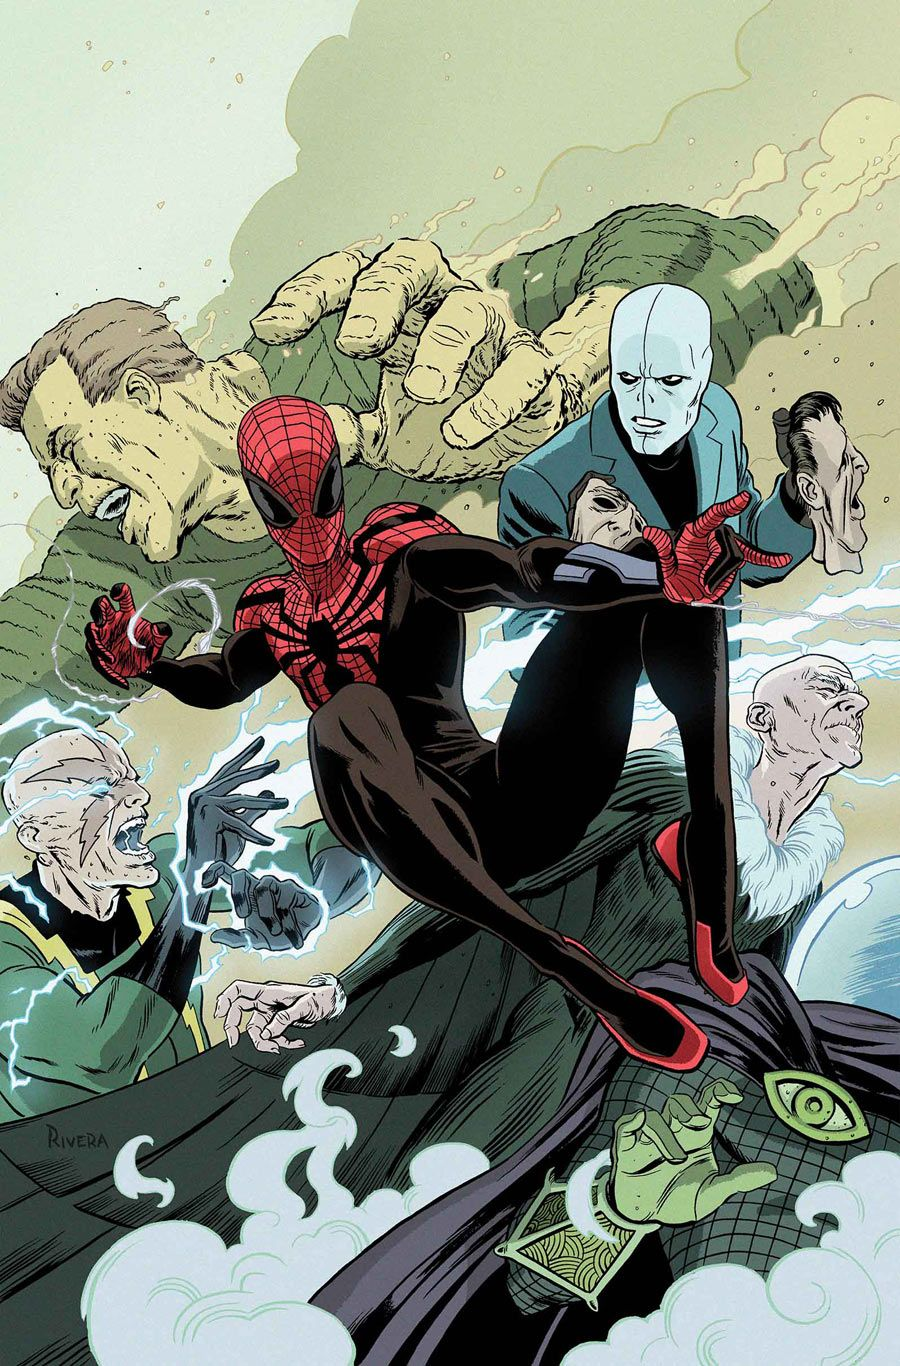 #Superior #Spiderman #Fan #Art. (Superior Spider-Man Team Up Vol.1 #7 Cover) By: Paolo Rivera. (THE * 5 * STÅR * ÅWARD * OF: * AW YEAH, IT'S MAJOR ÅWESOMENESS!!!™)[THANK Ü 4 PINNING!!!<·><]<©>ÅÅÅ+(OB4E)